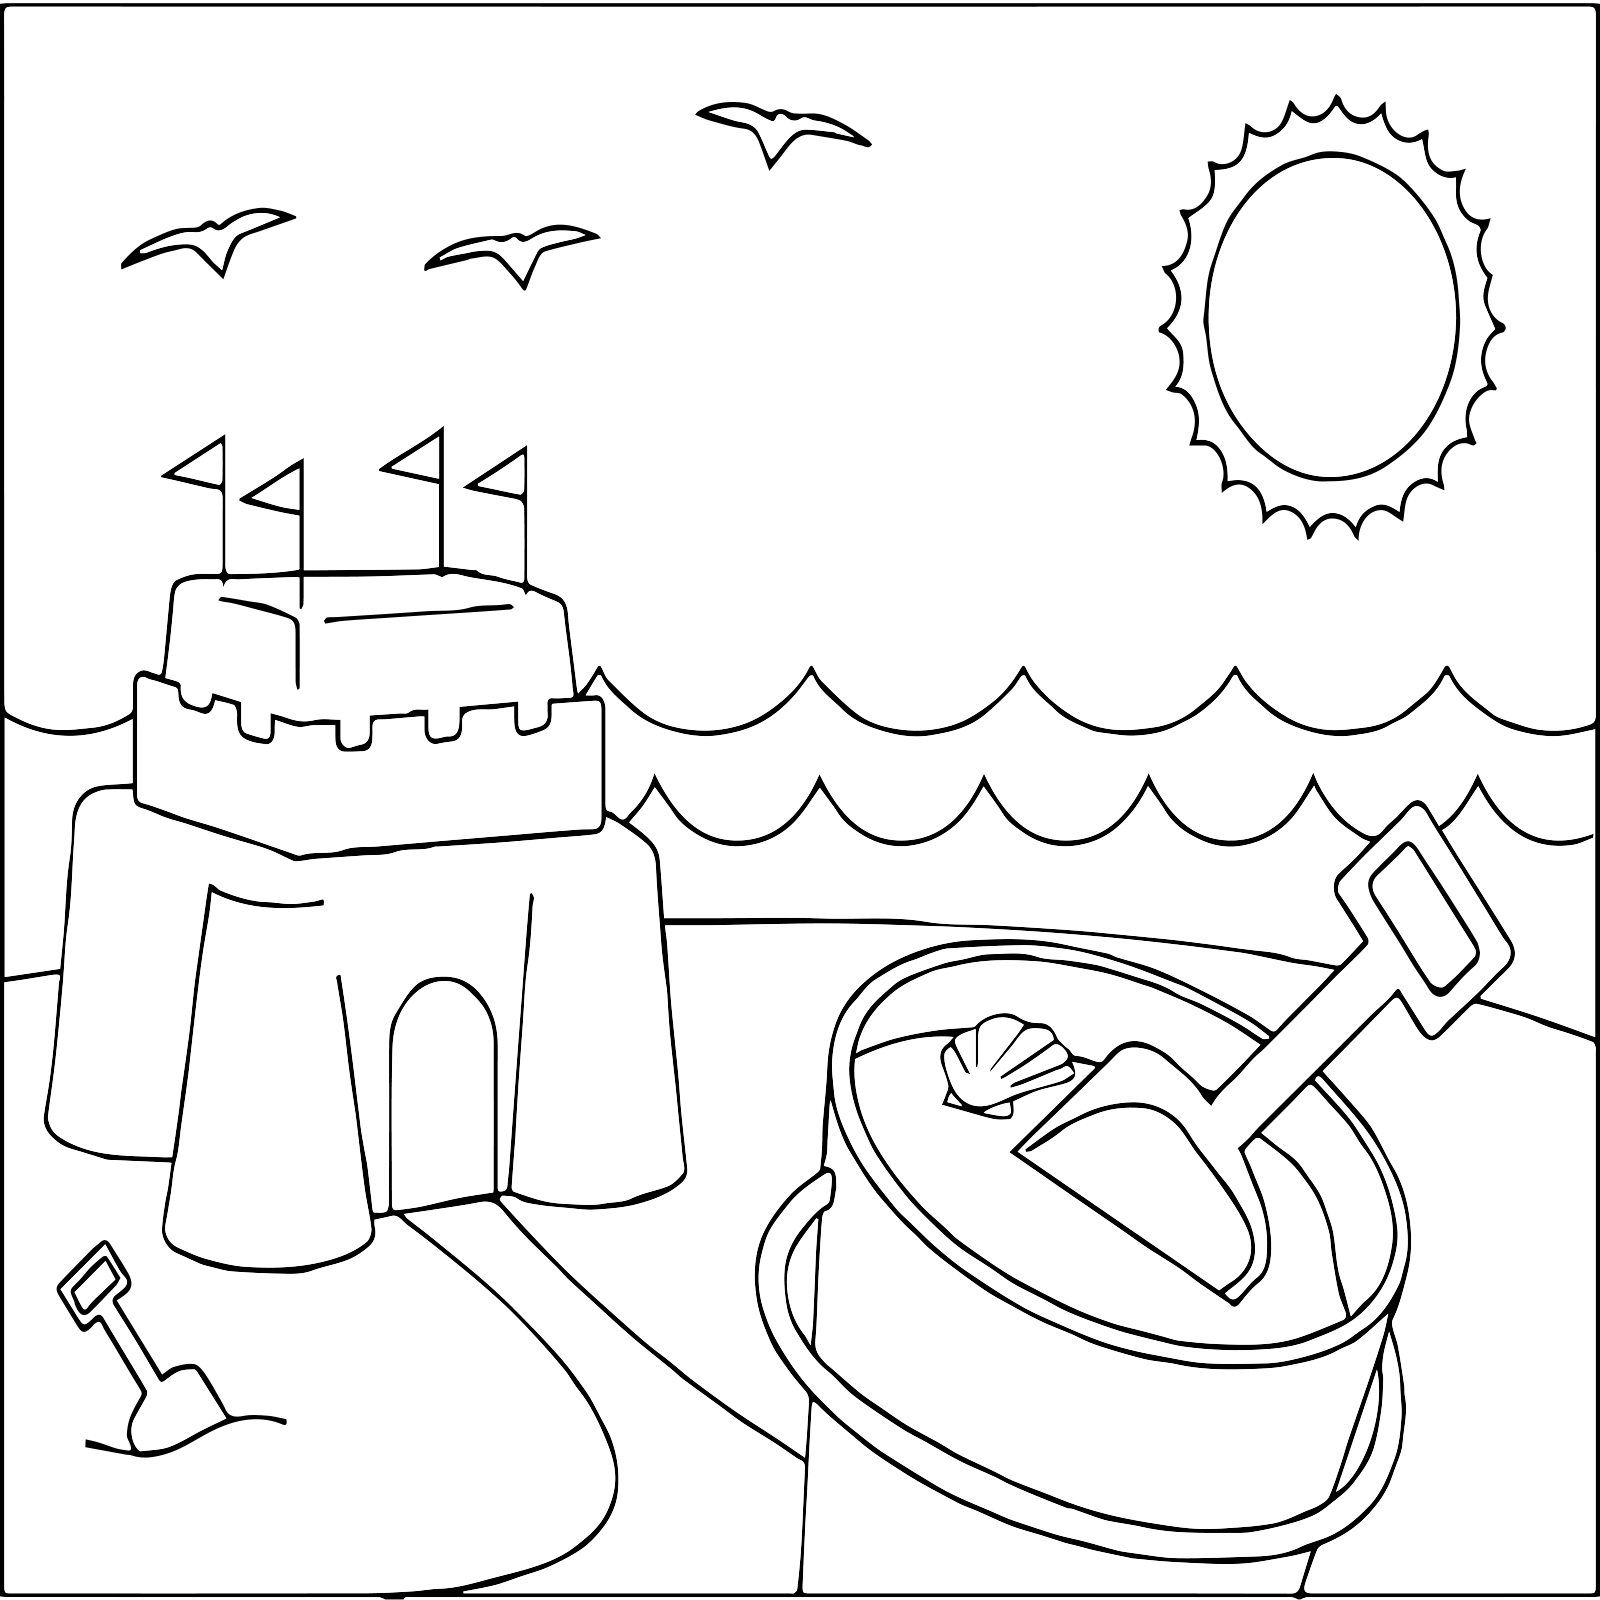 Free Videos For Kids Summer Coloring Pages Free Printable For Kids